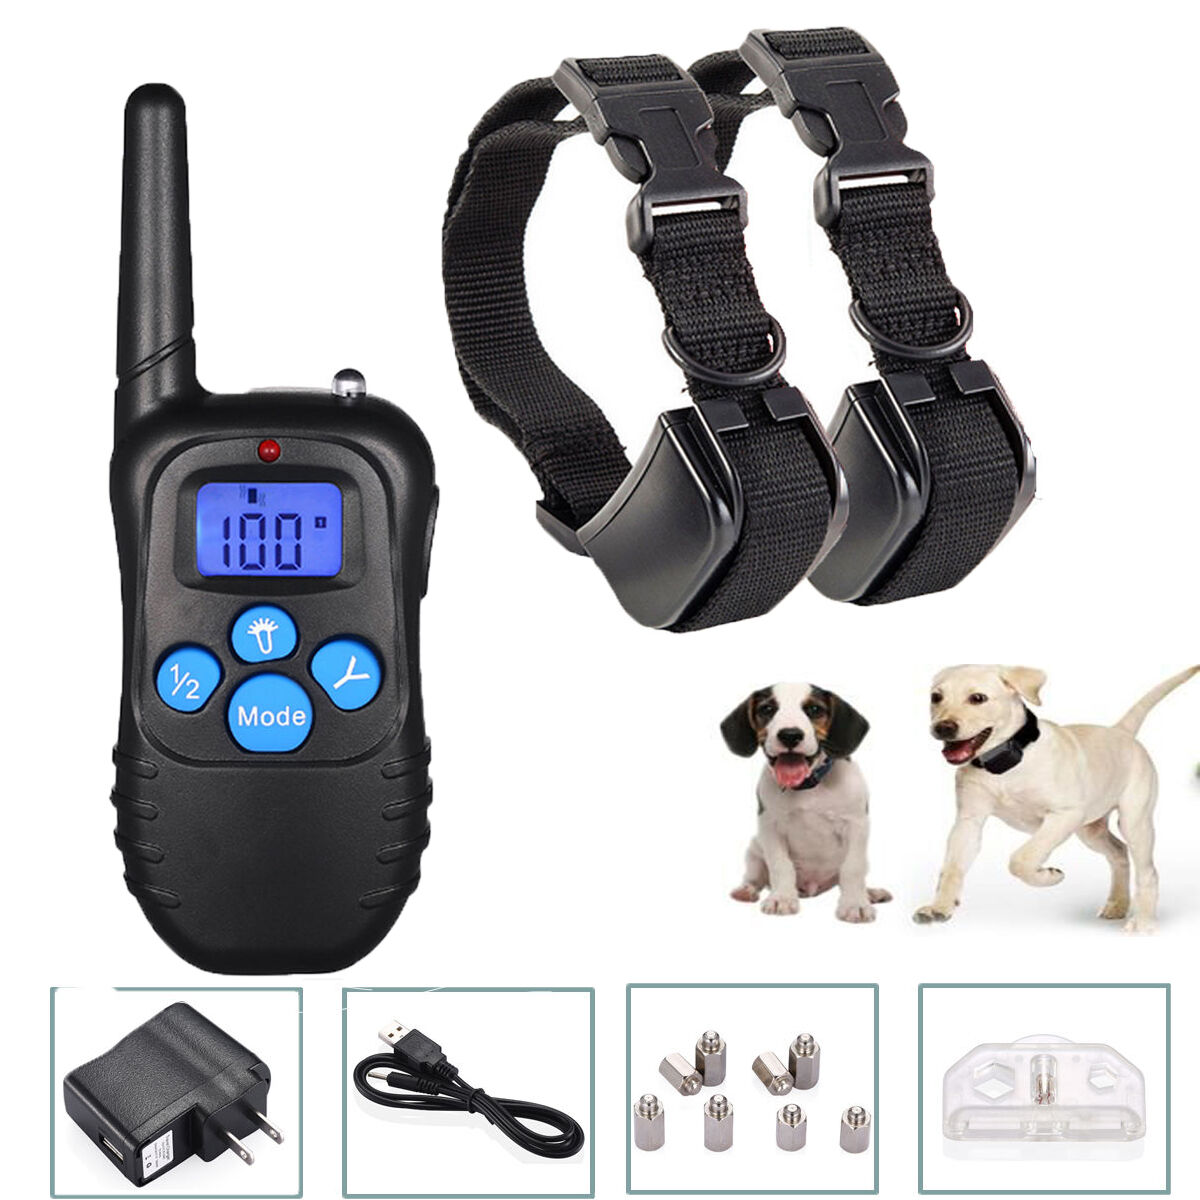 Купить Housmile HS-LN-CX532BK - Electric Remote Dog Training Collar Rechargeable Shock Collar For 2 Dogs 330Yard